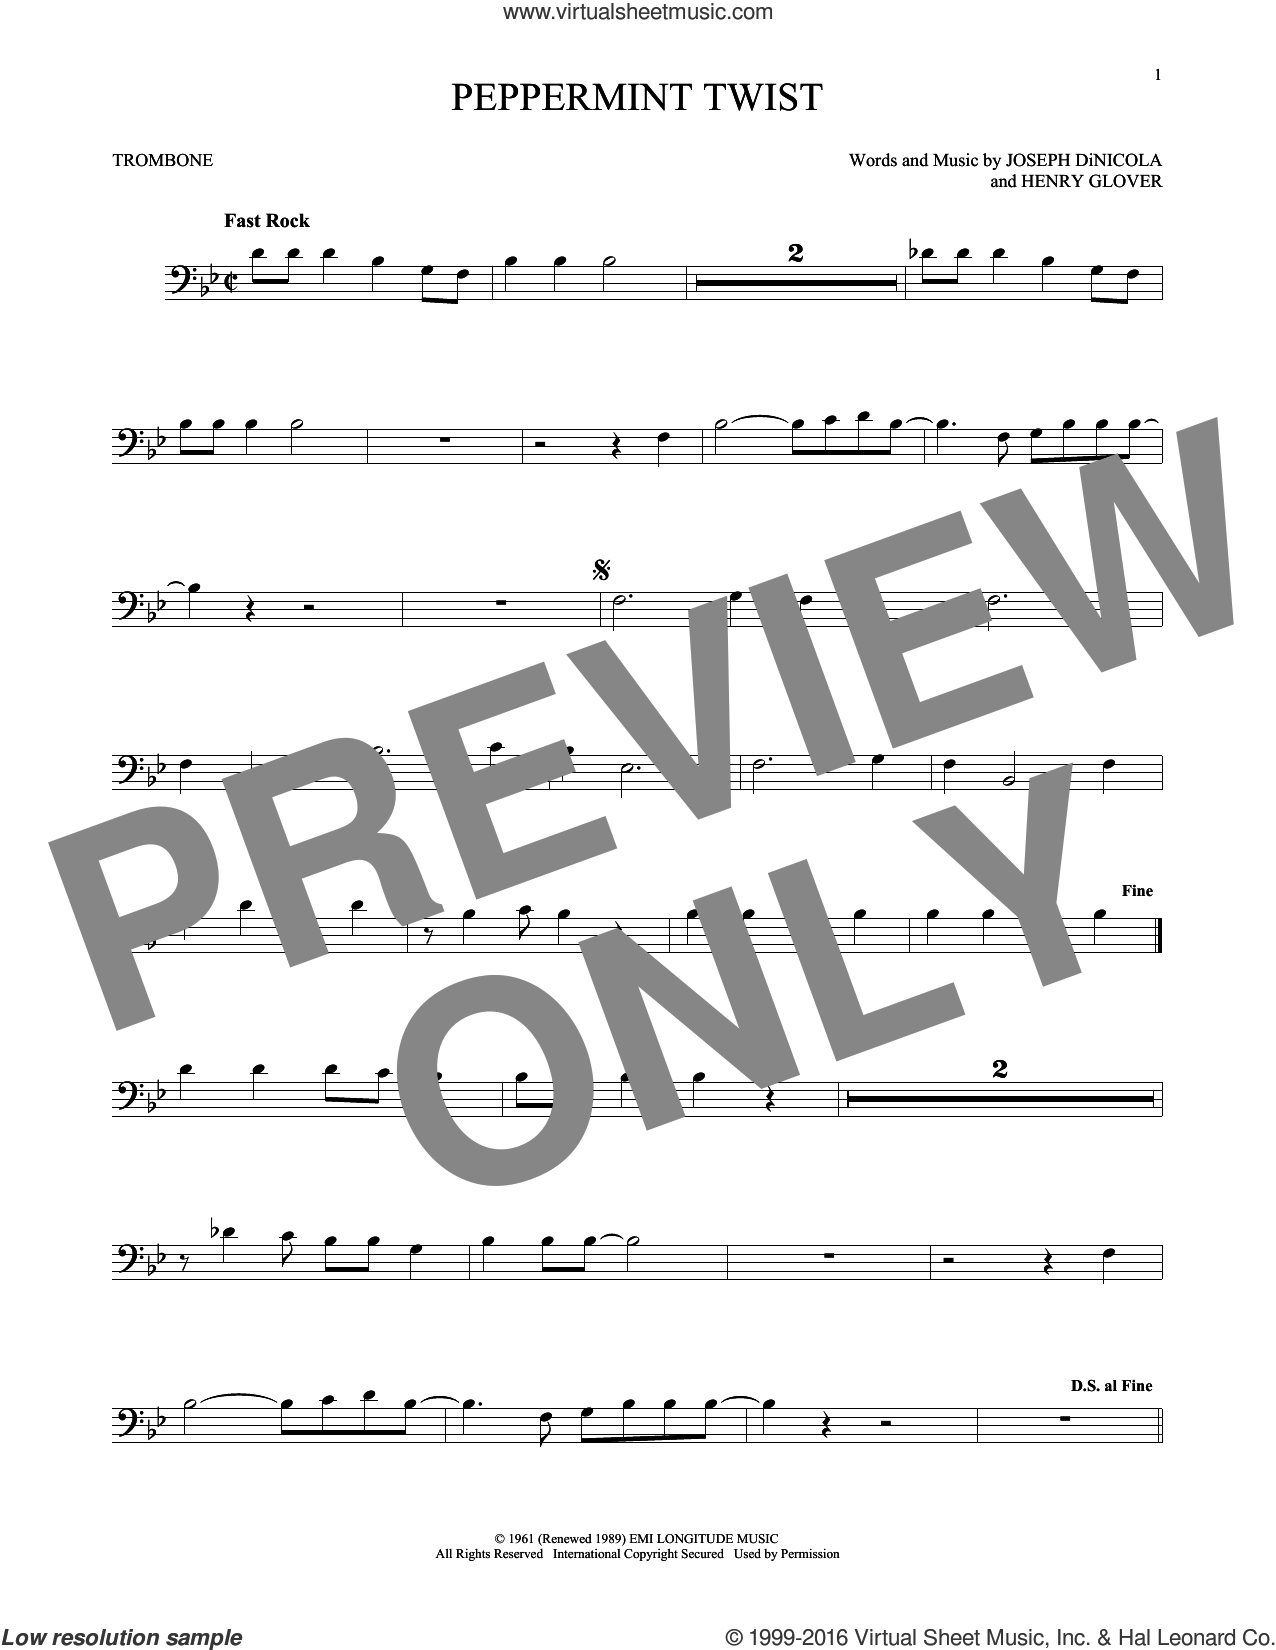 Peppermint Twist sheet music for trombone solo by Joey Dee & The Starliters, Henry Glover and Joseph DiNicola, intermediate skill level